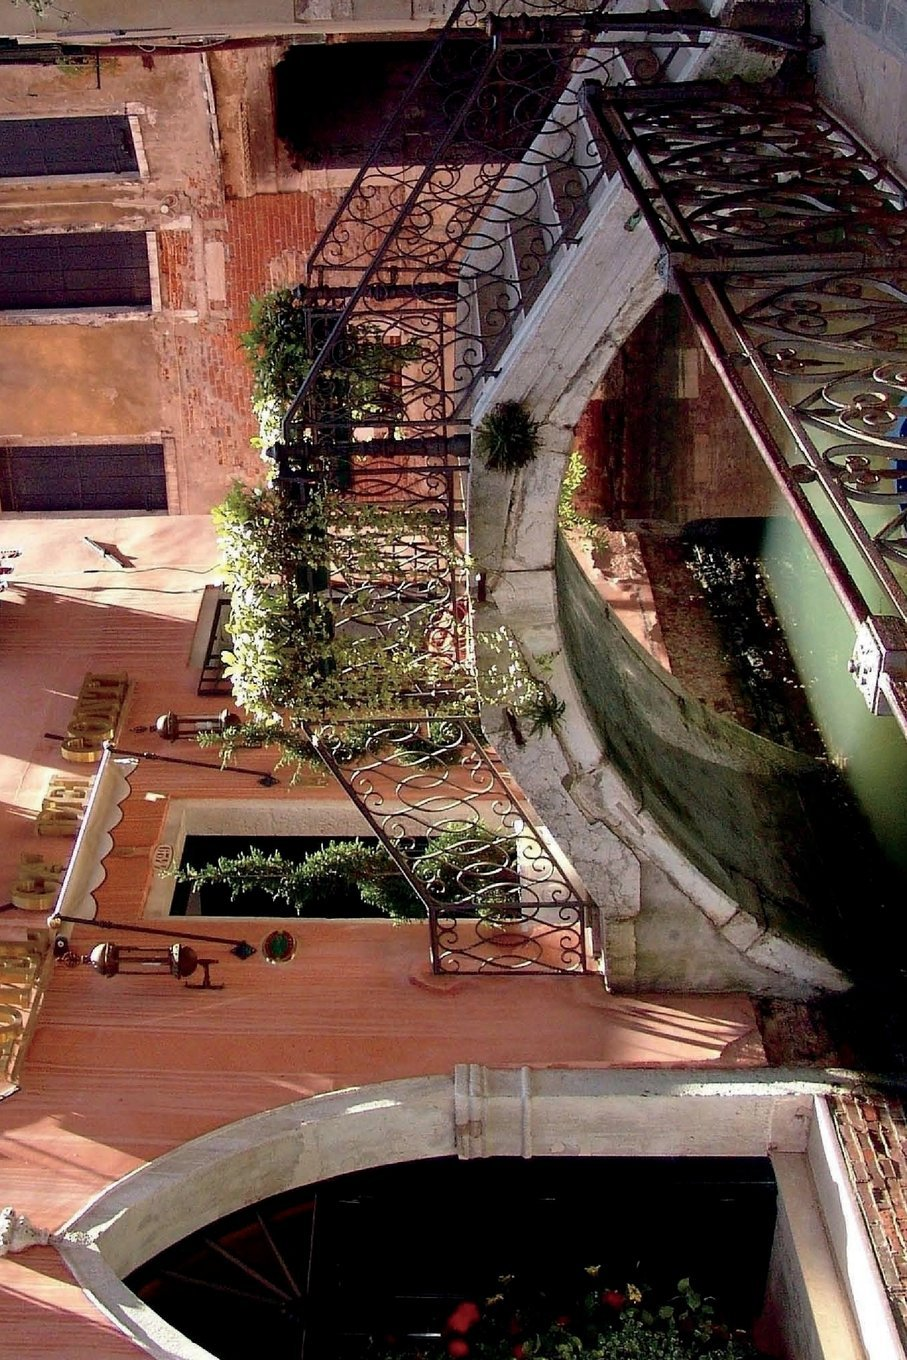 Romantic Foot Bridge Over Canal in Venice Italy Journal: 150 page lined notebook/diary ebook